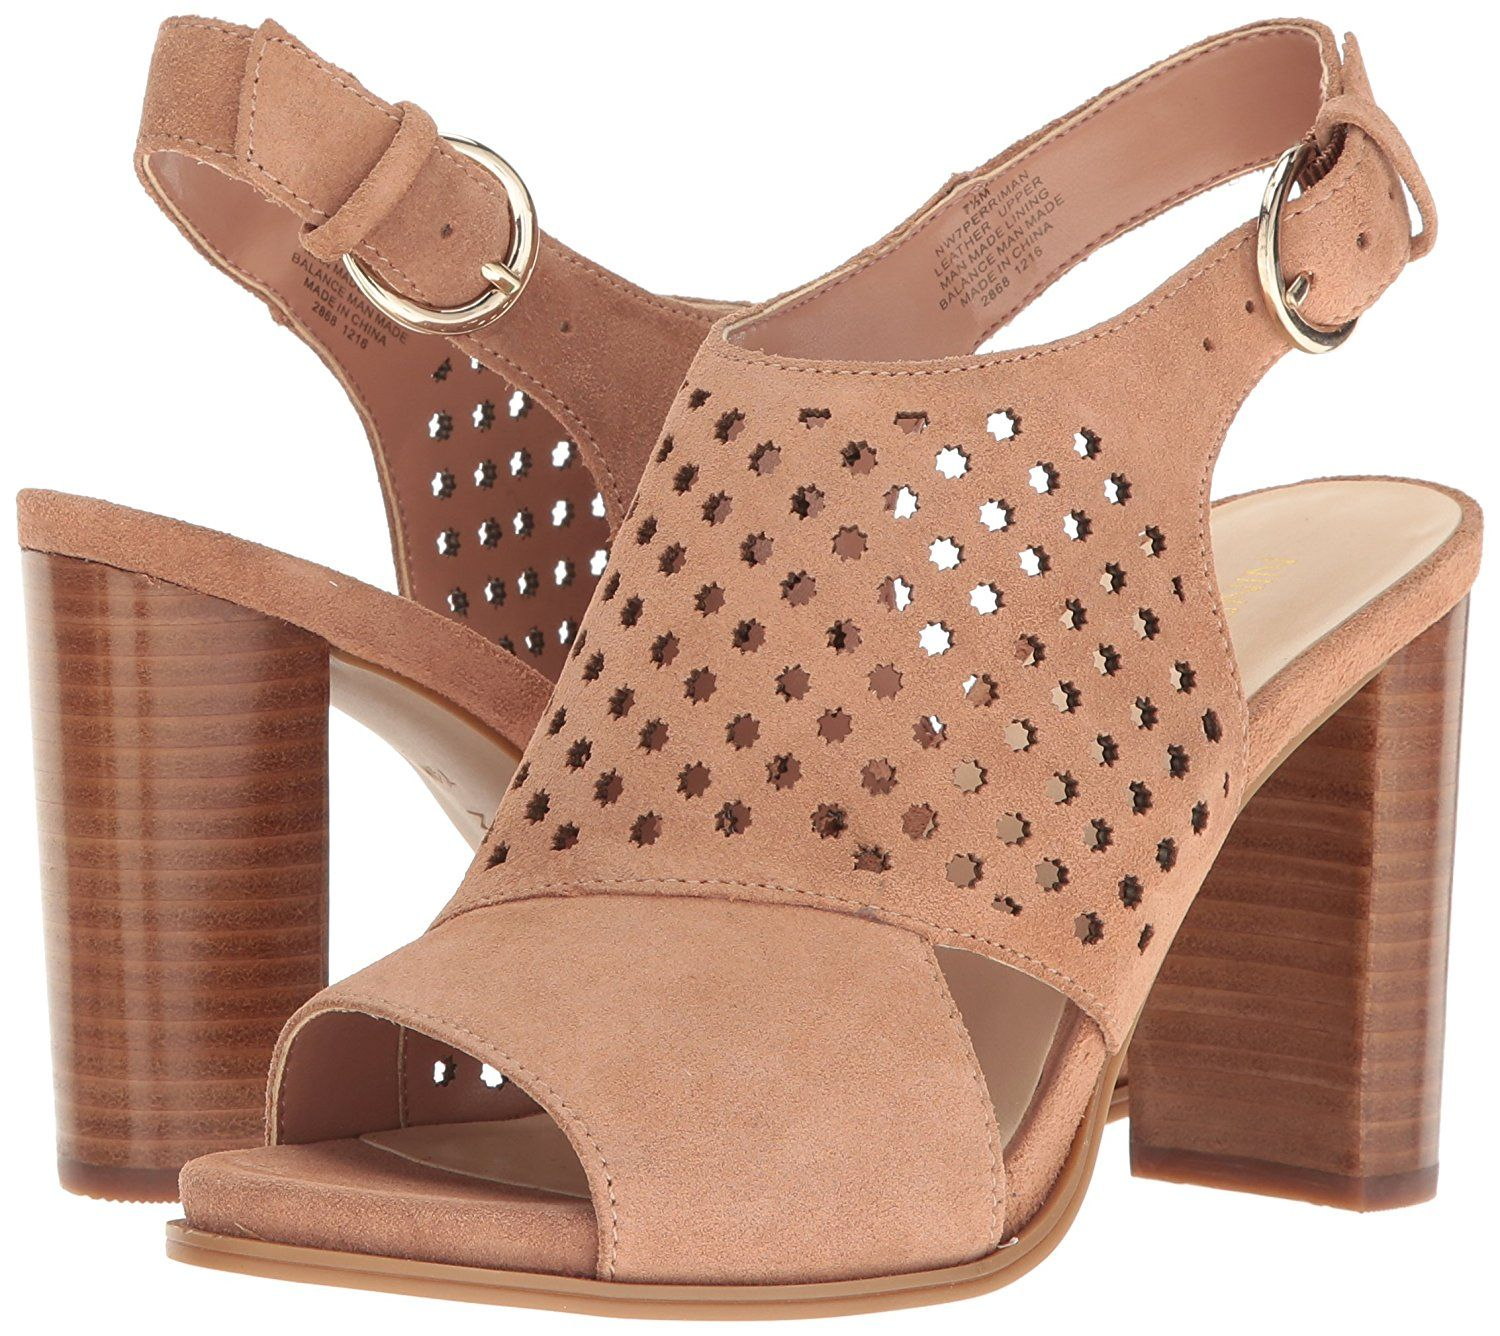 Nine West Women S Perriman Suede Dress Sandal You Can Find Out More Details At The Link Of The Image Summer Sandals Heels Sandals Heels Boot Shoes Women